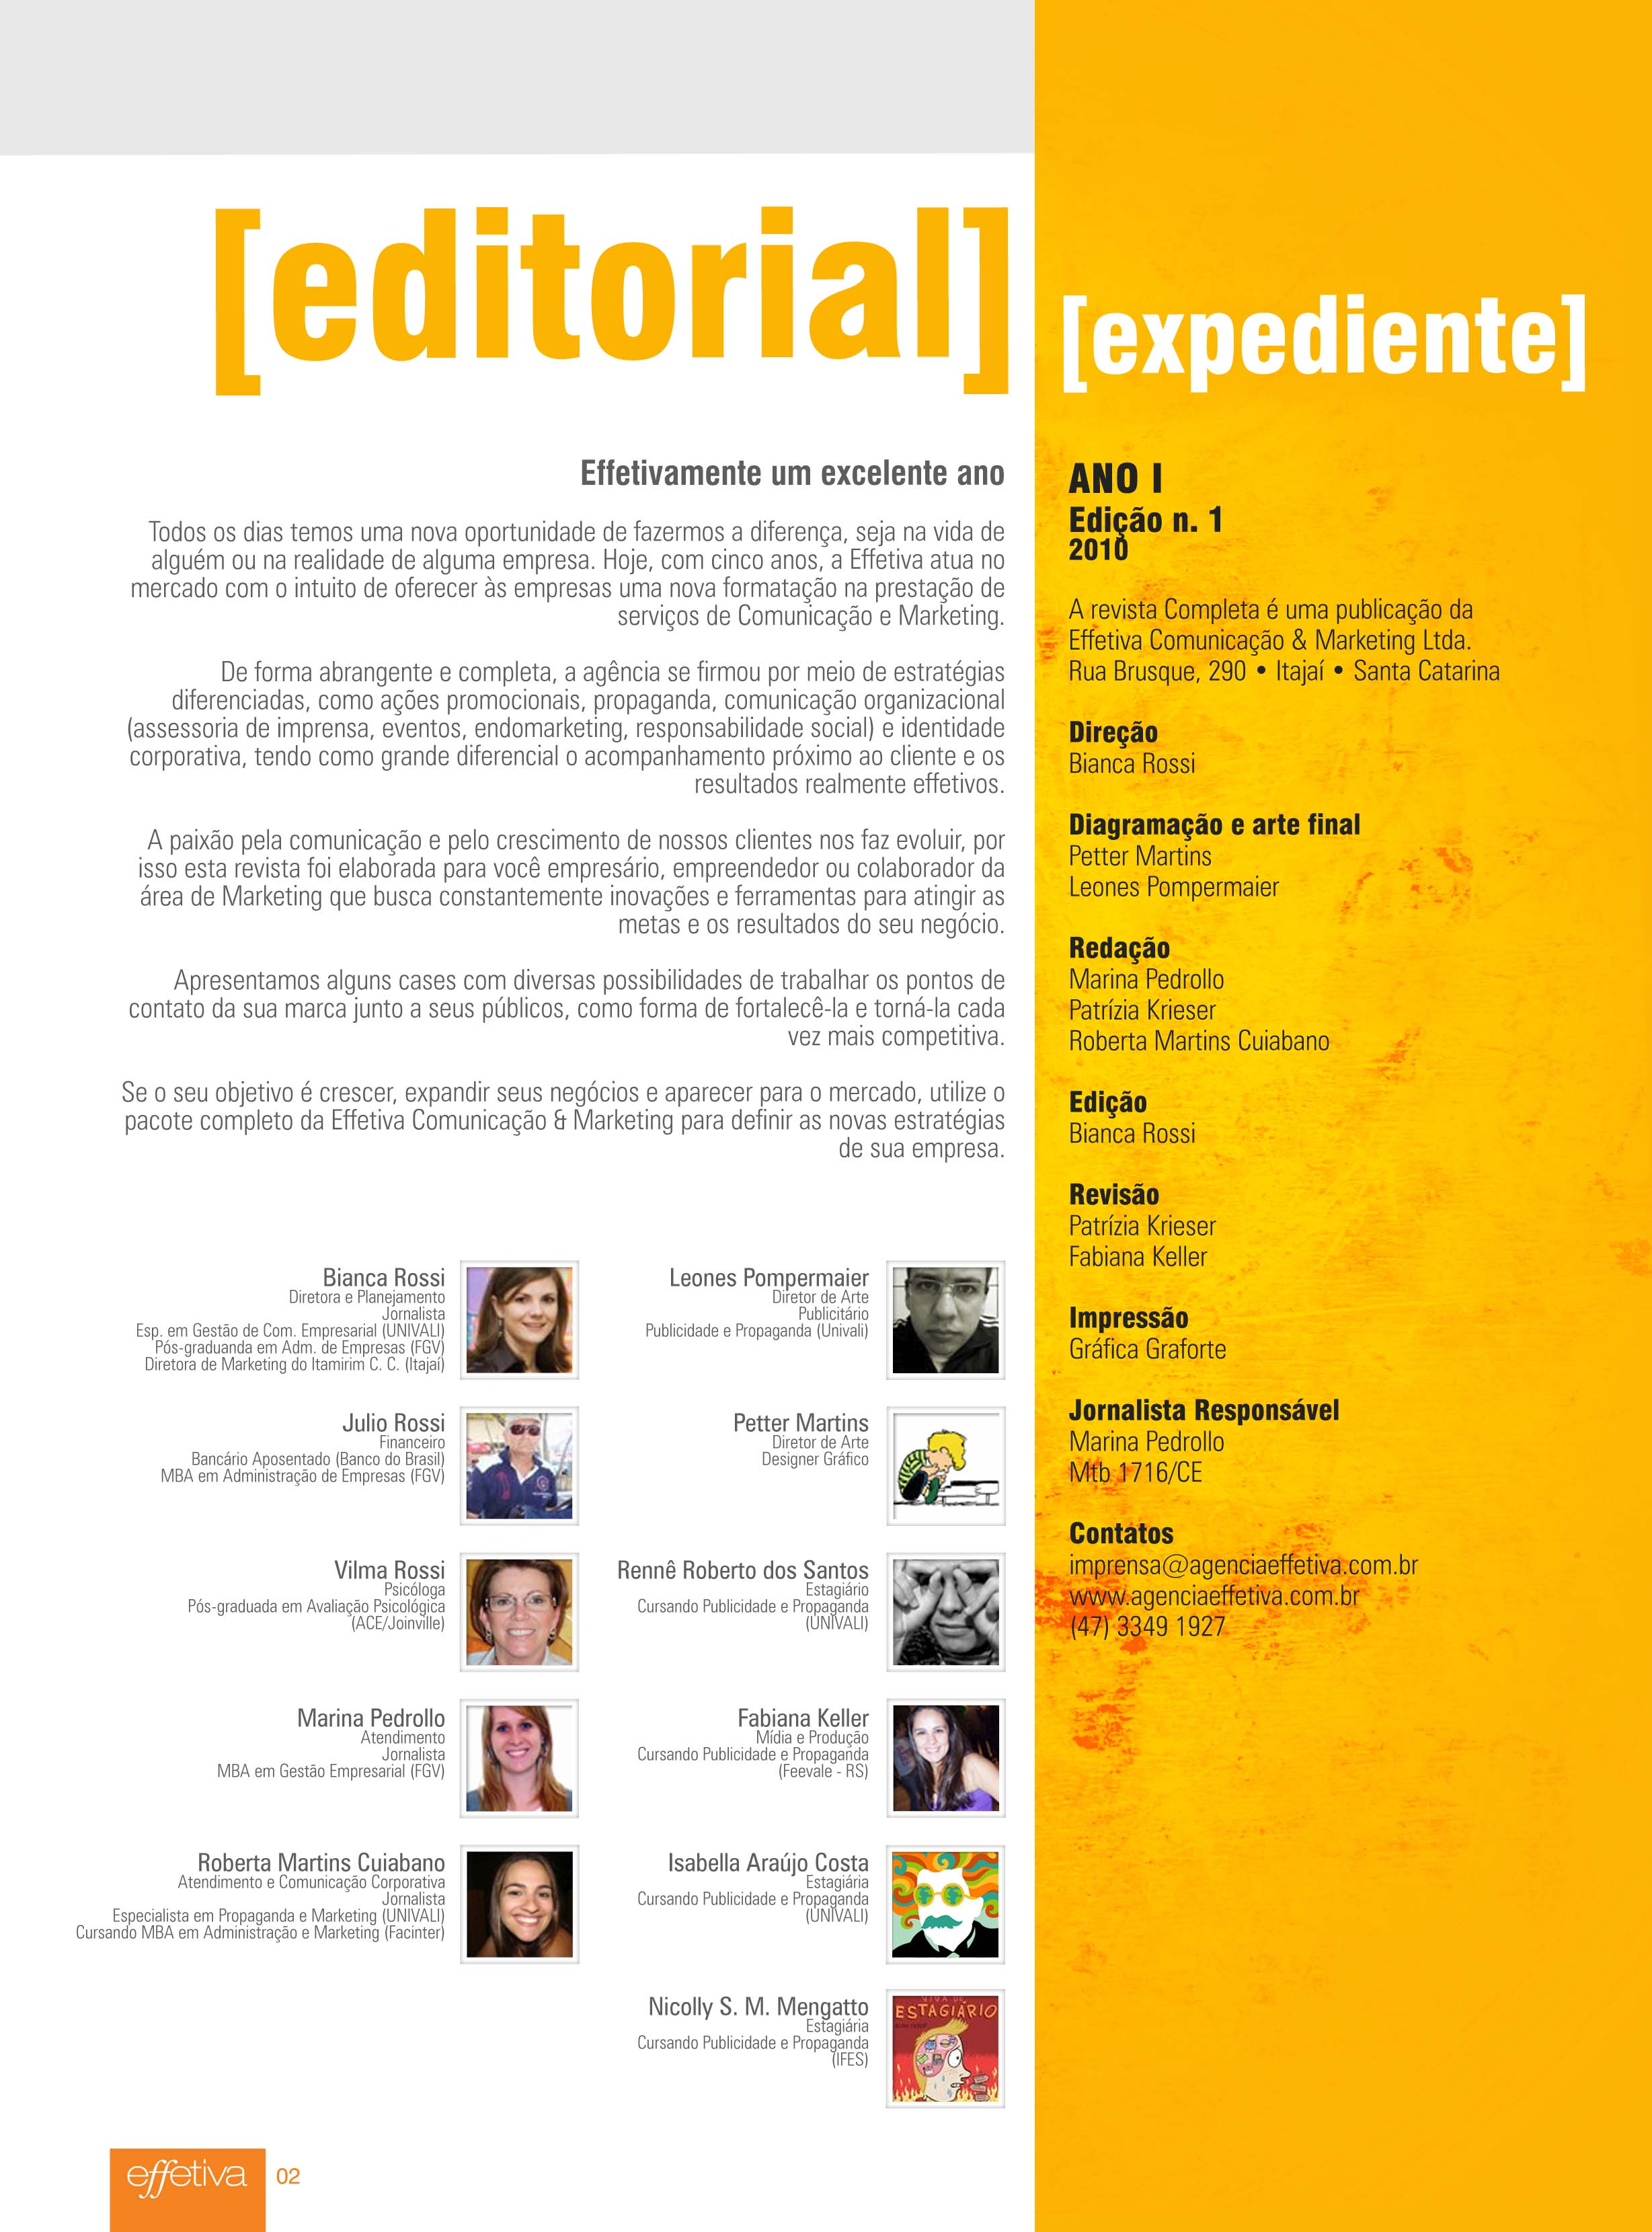 Effetiva_-_Revista_-_Página_02_-_Editorial_e_Expediente